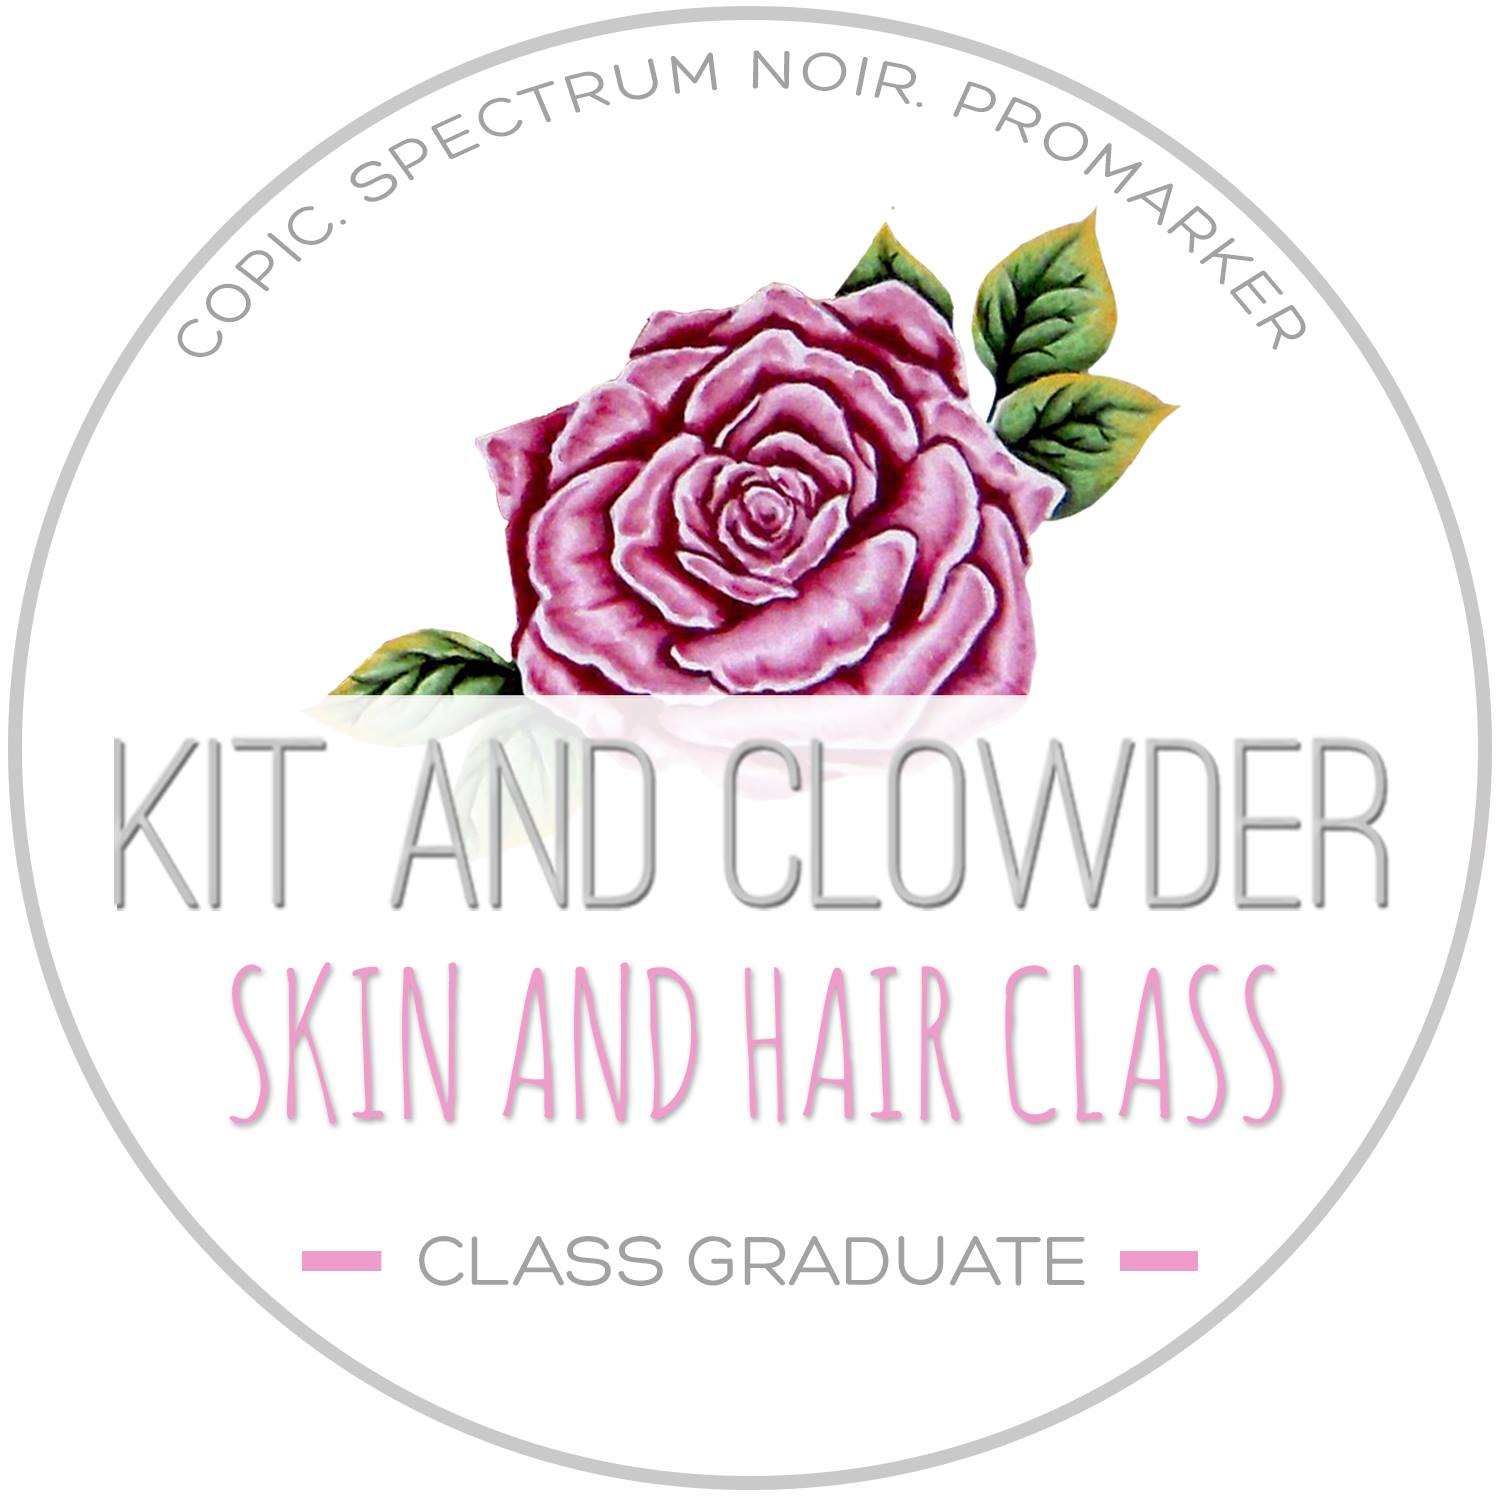 Kit and Clowder Skin and Hair Technique Class Graduate